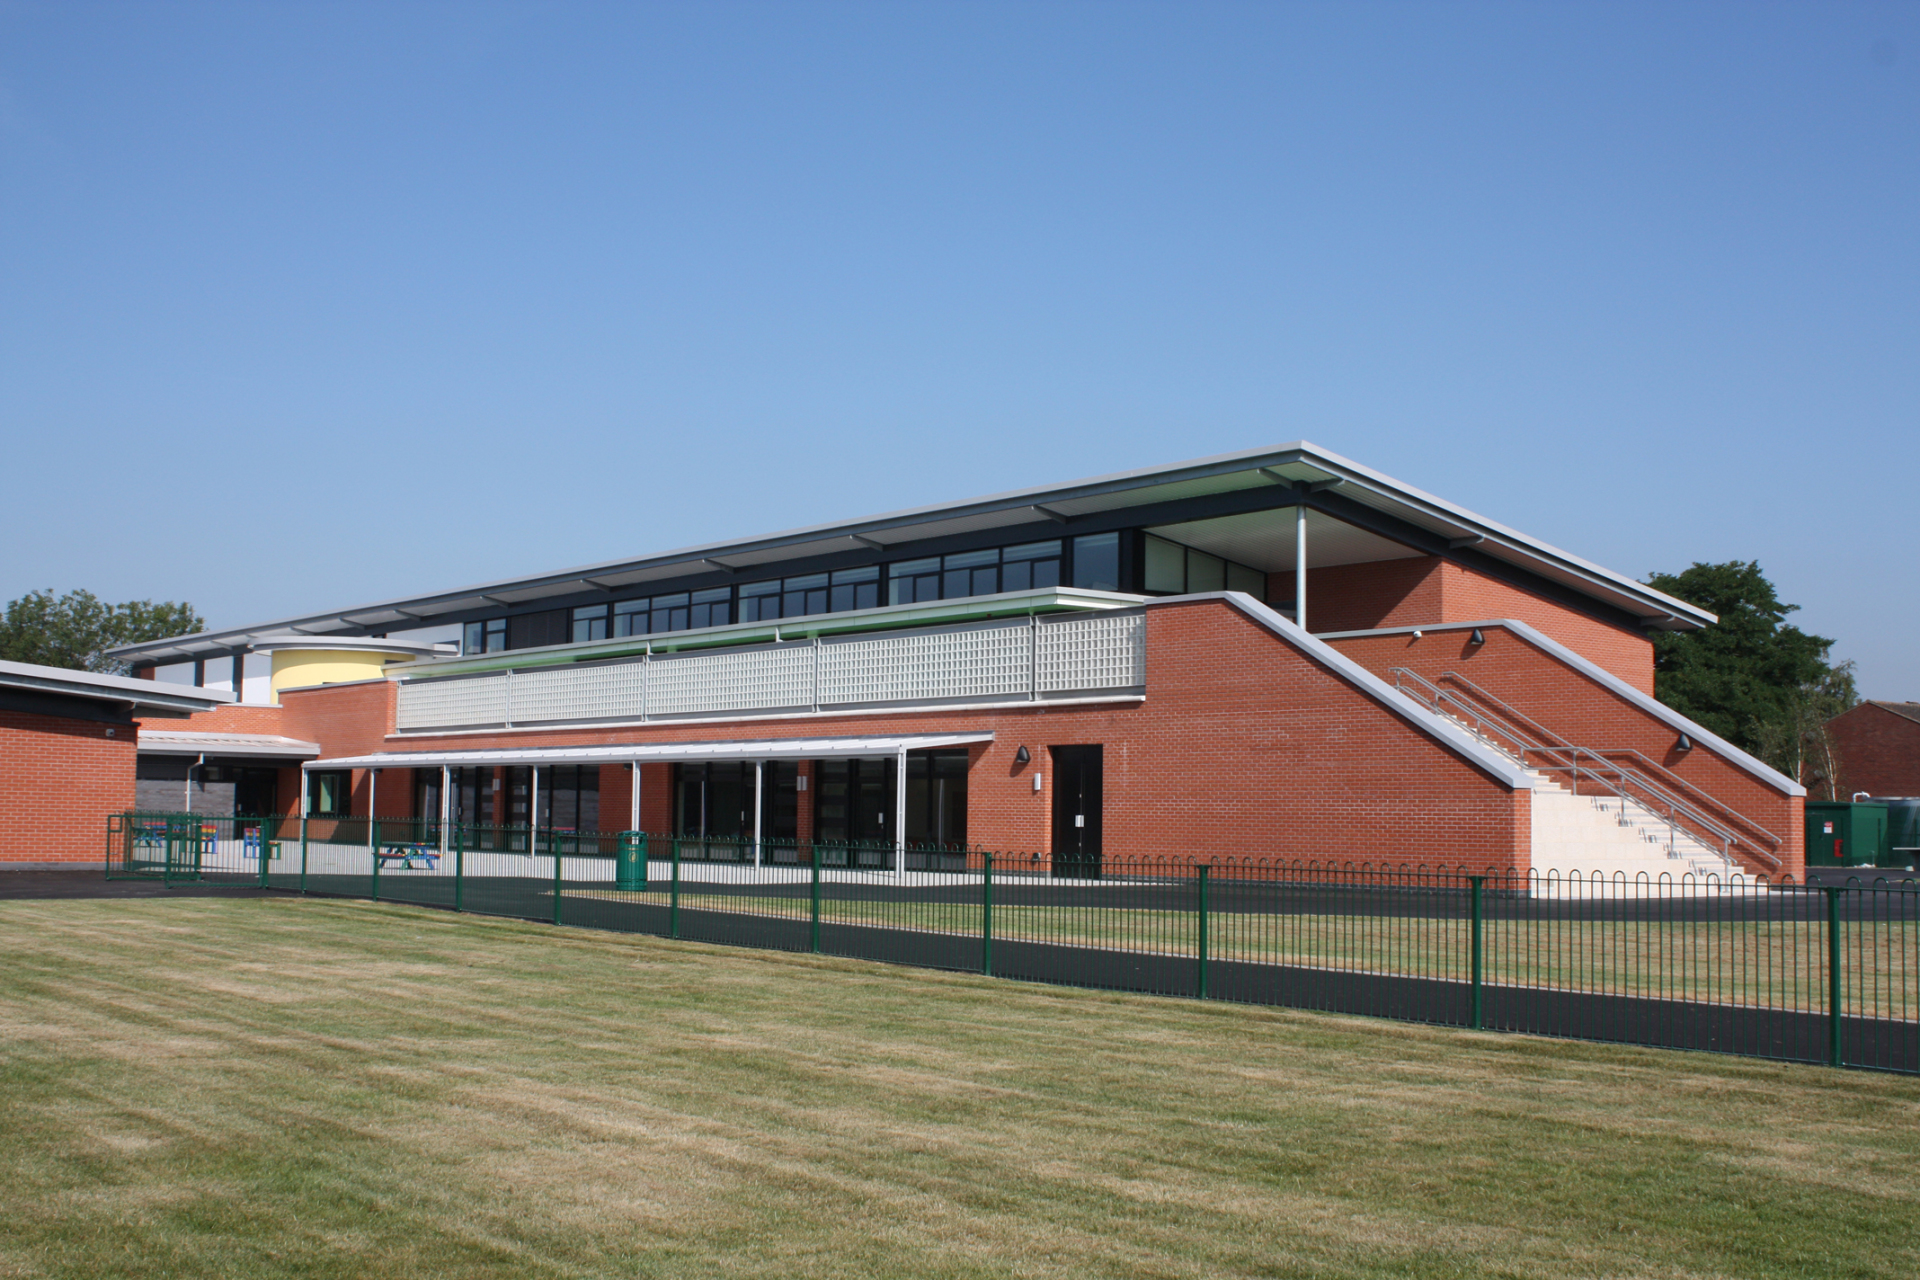 Fordbridge Community Primary School (Solihull) by Shrewsbury based architects Baart Harries Newall (BHN architects)